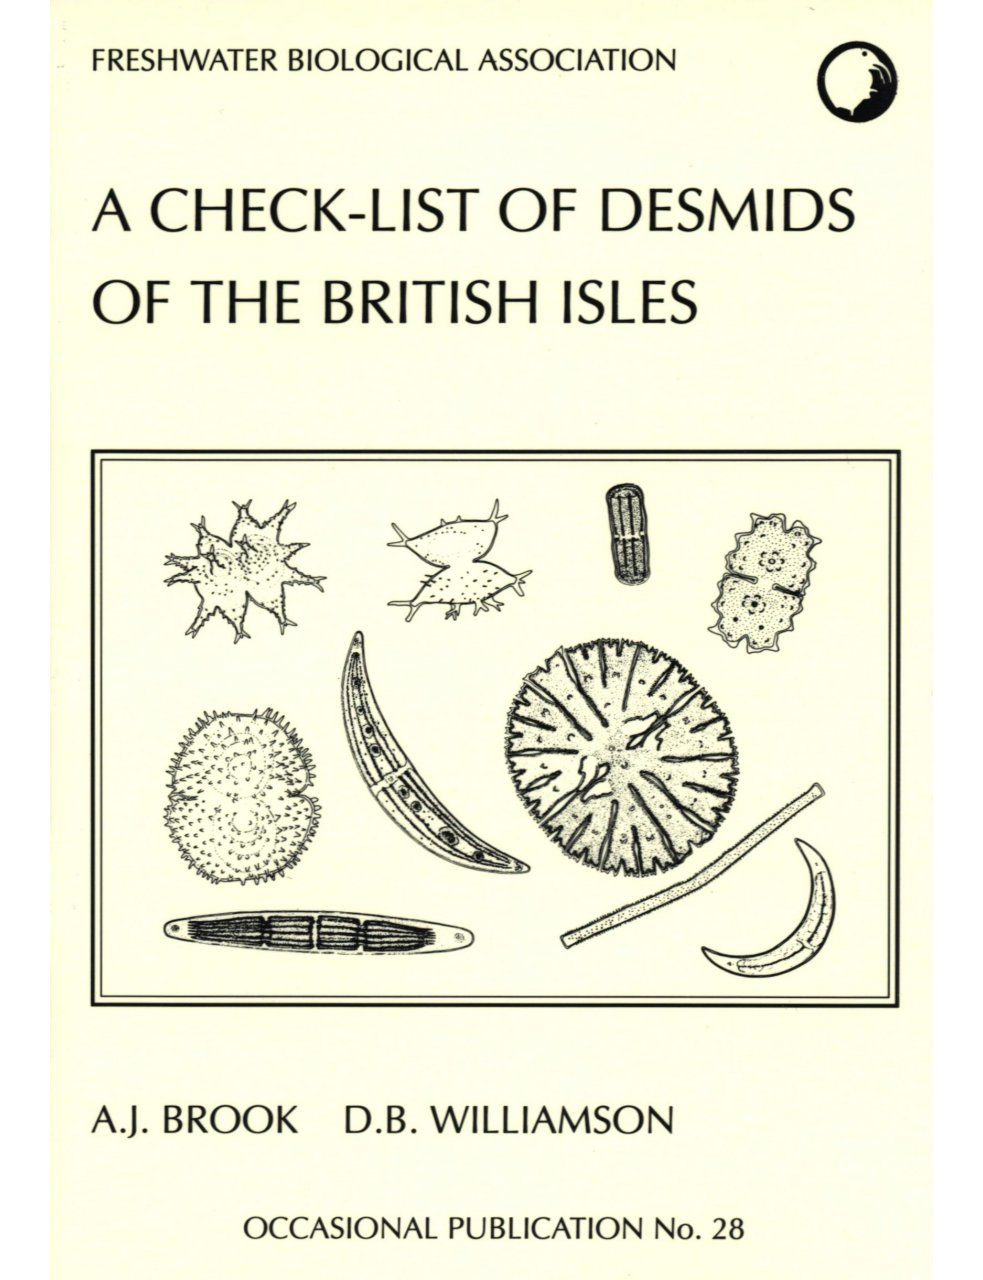 A Check-List of Desmids of the British Isles